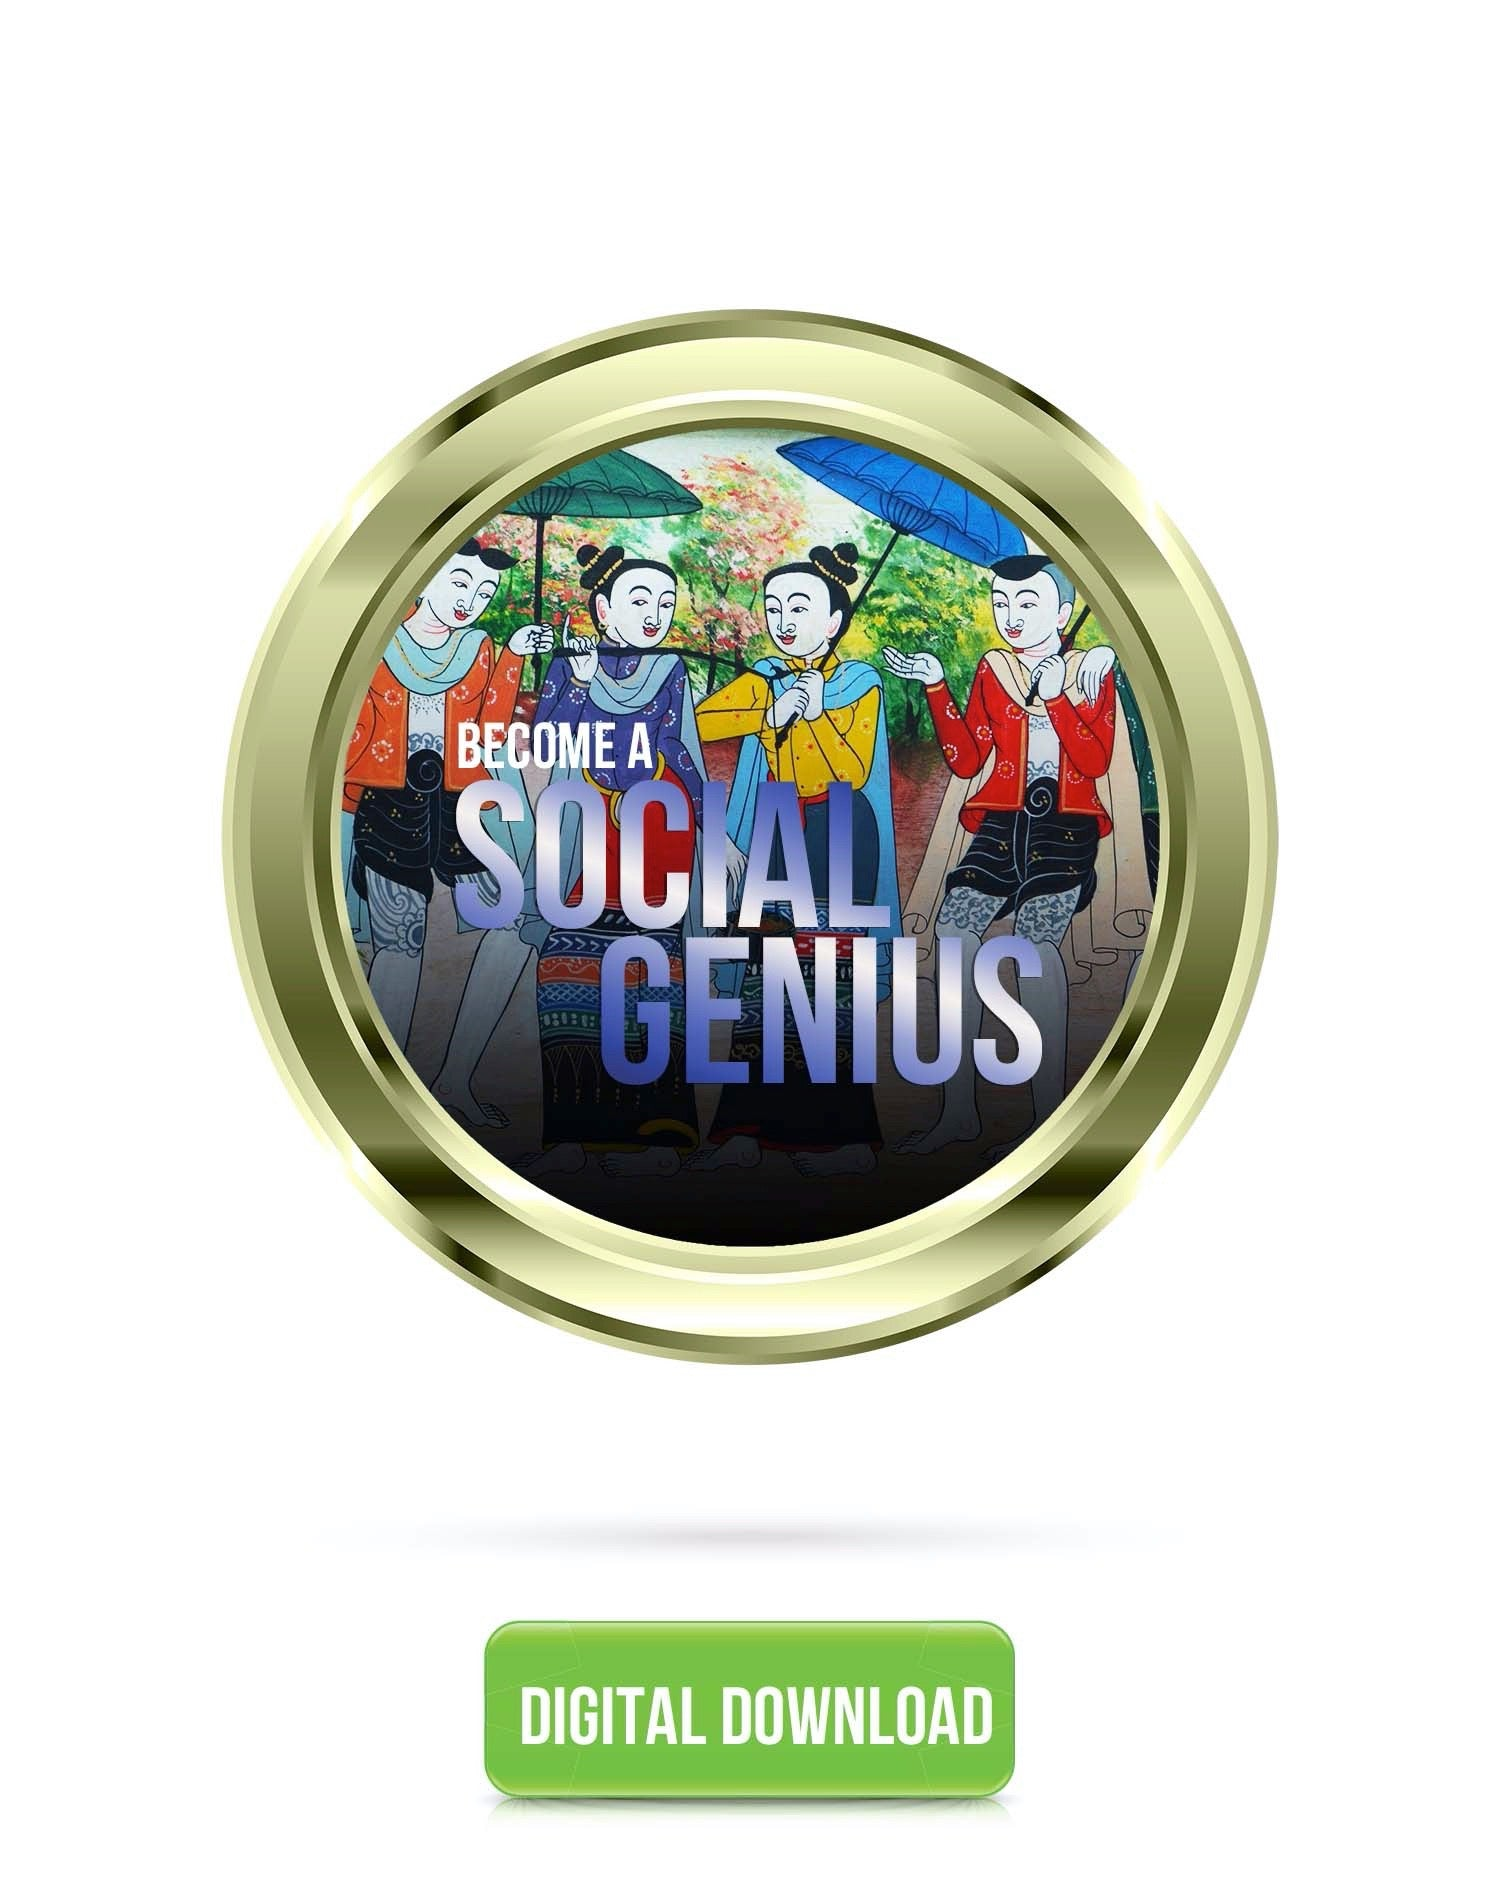 Become A Social Genius | Improve Your Social Skills Subliminal